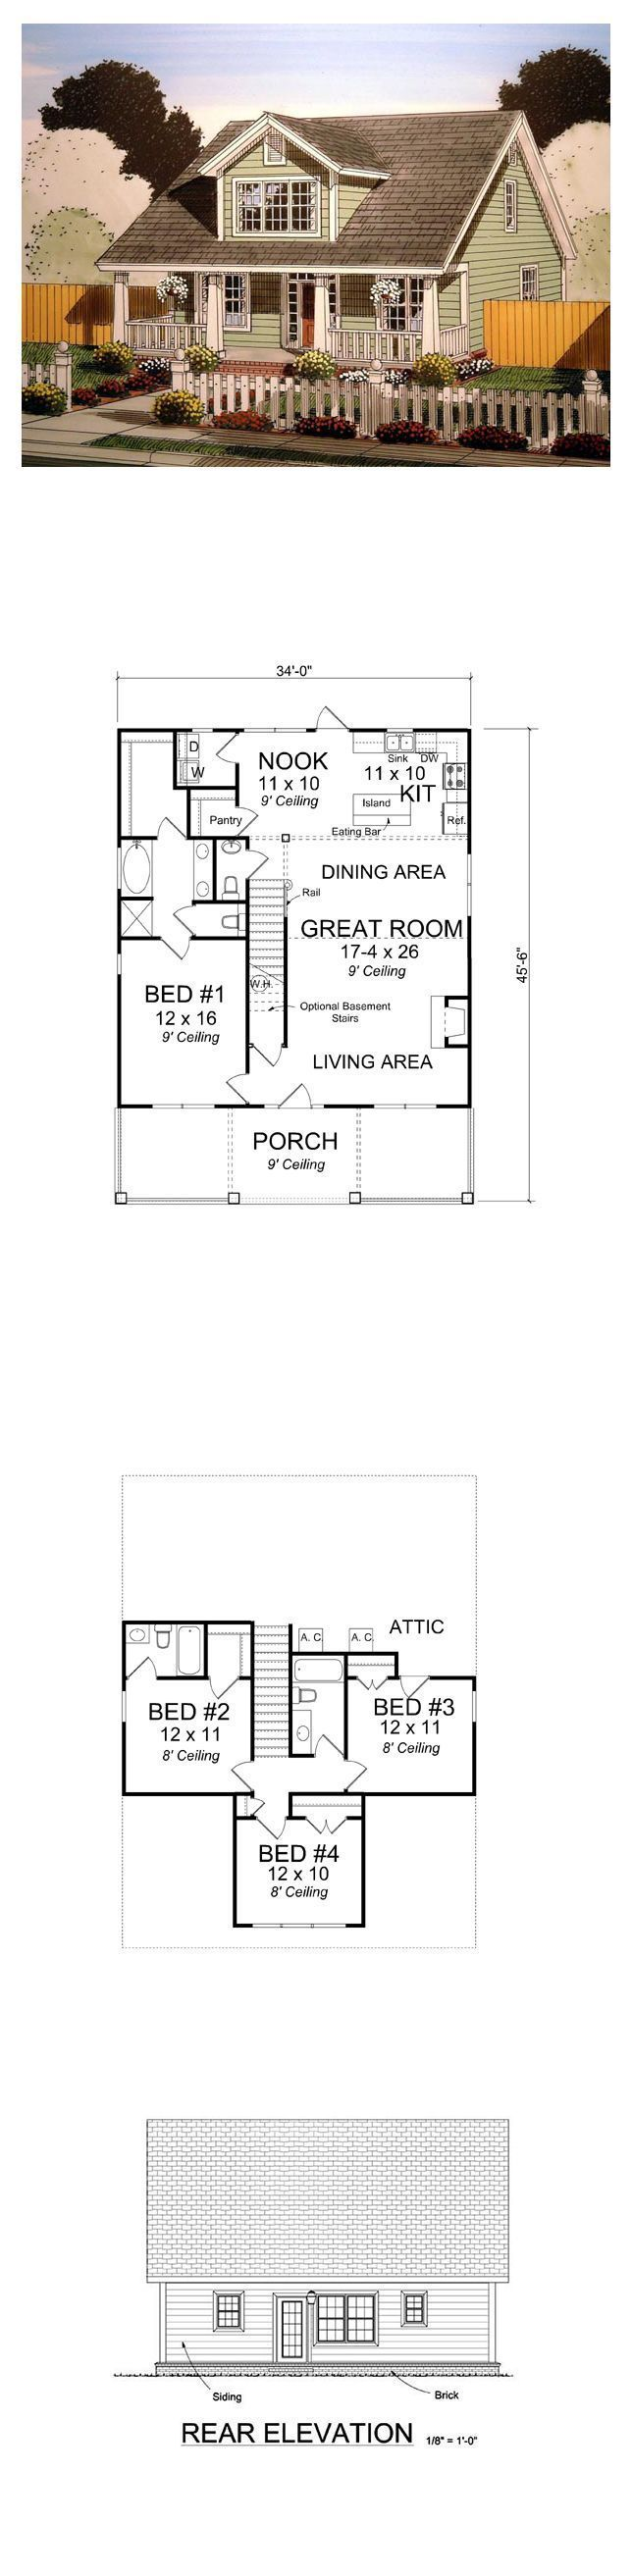 Cape Cod House Plan 61403 | Total Living Area: 1871 sq. ft., 4 bedrooms & 3.5 bathrooms. #houseplan #capecodstyle: